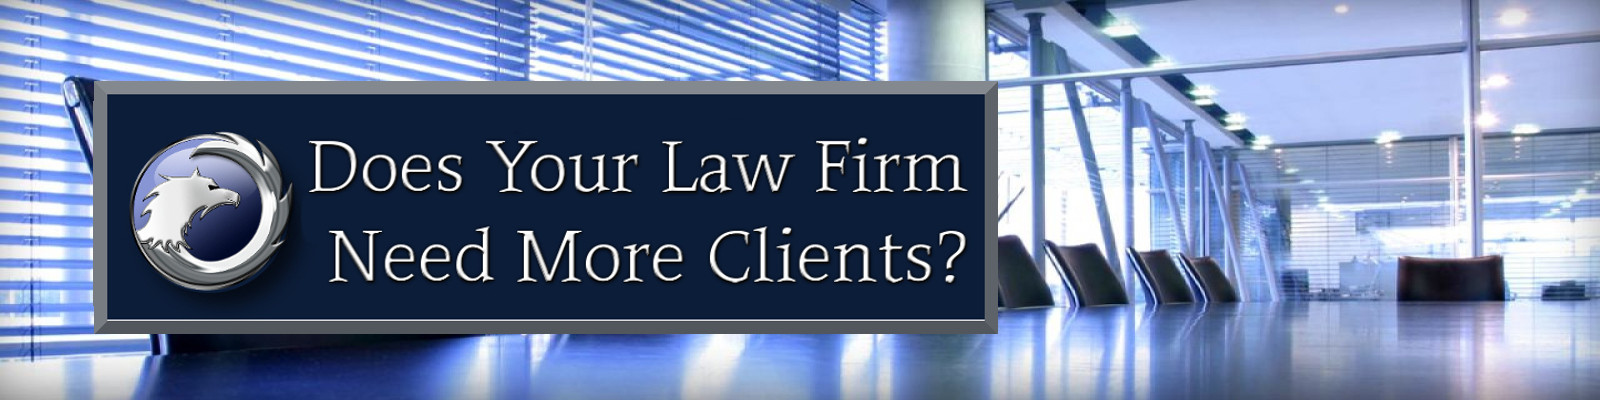 Law Firm SEO Clients